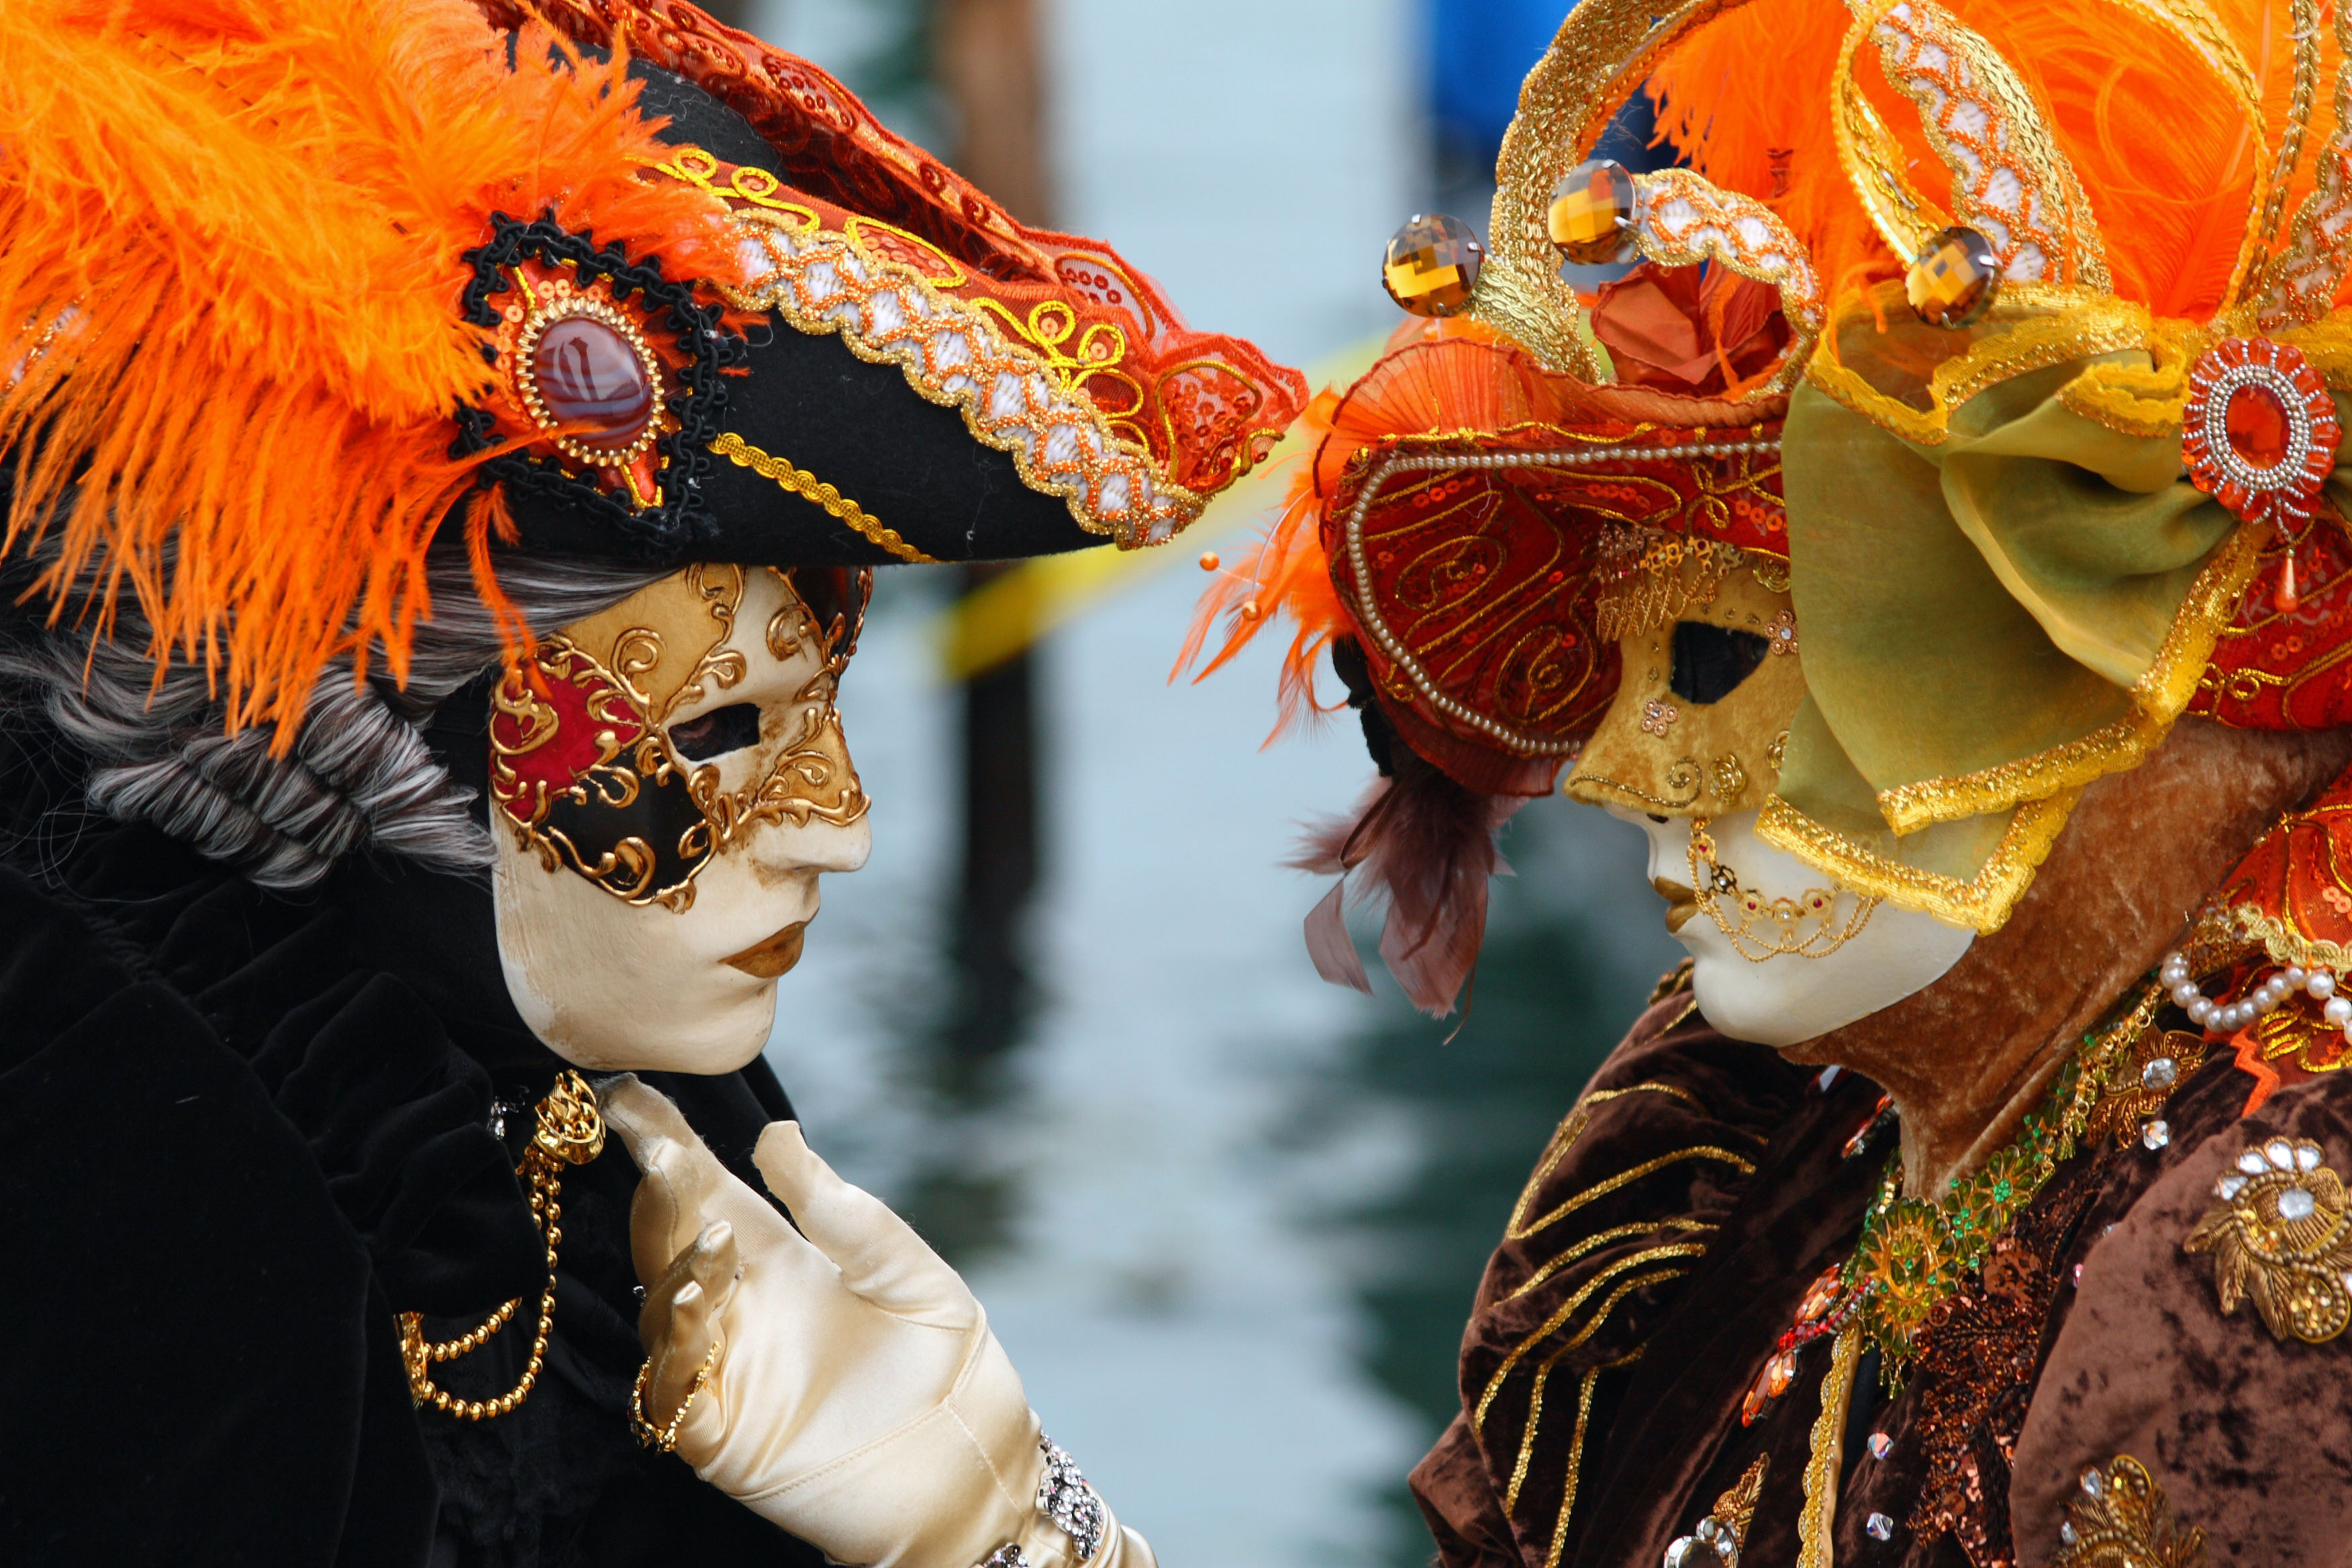 The Carnivale of Venice